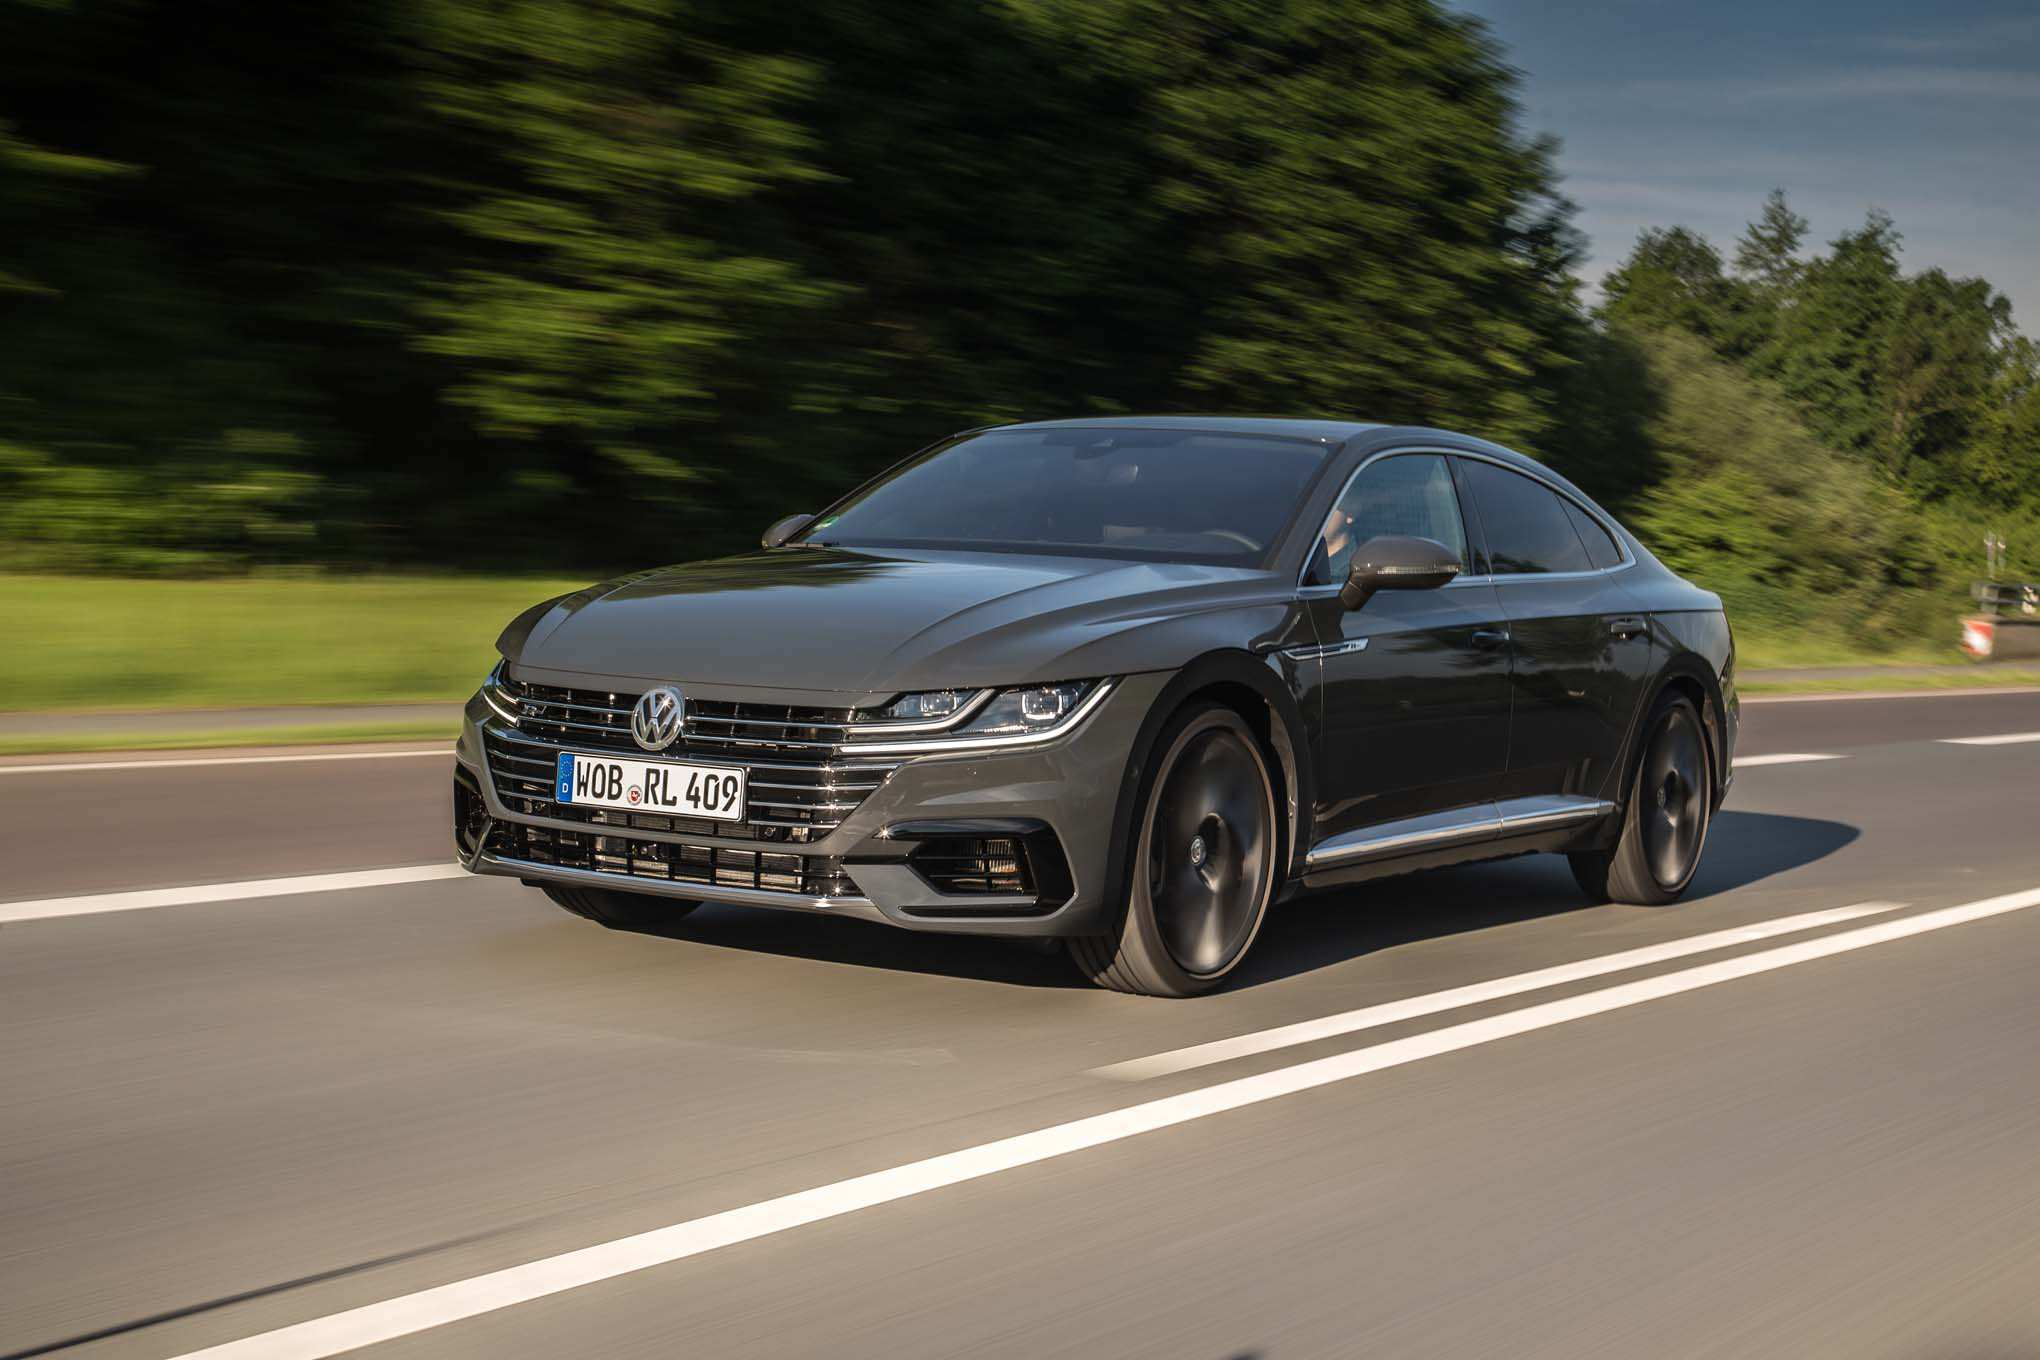 23 The Best Vw 2019 Arteon Picture